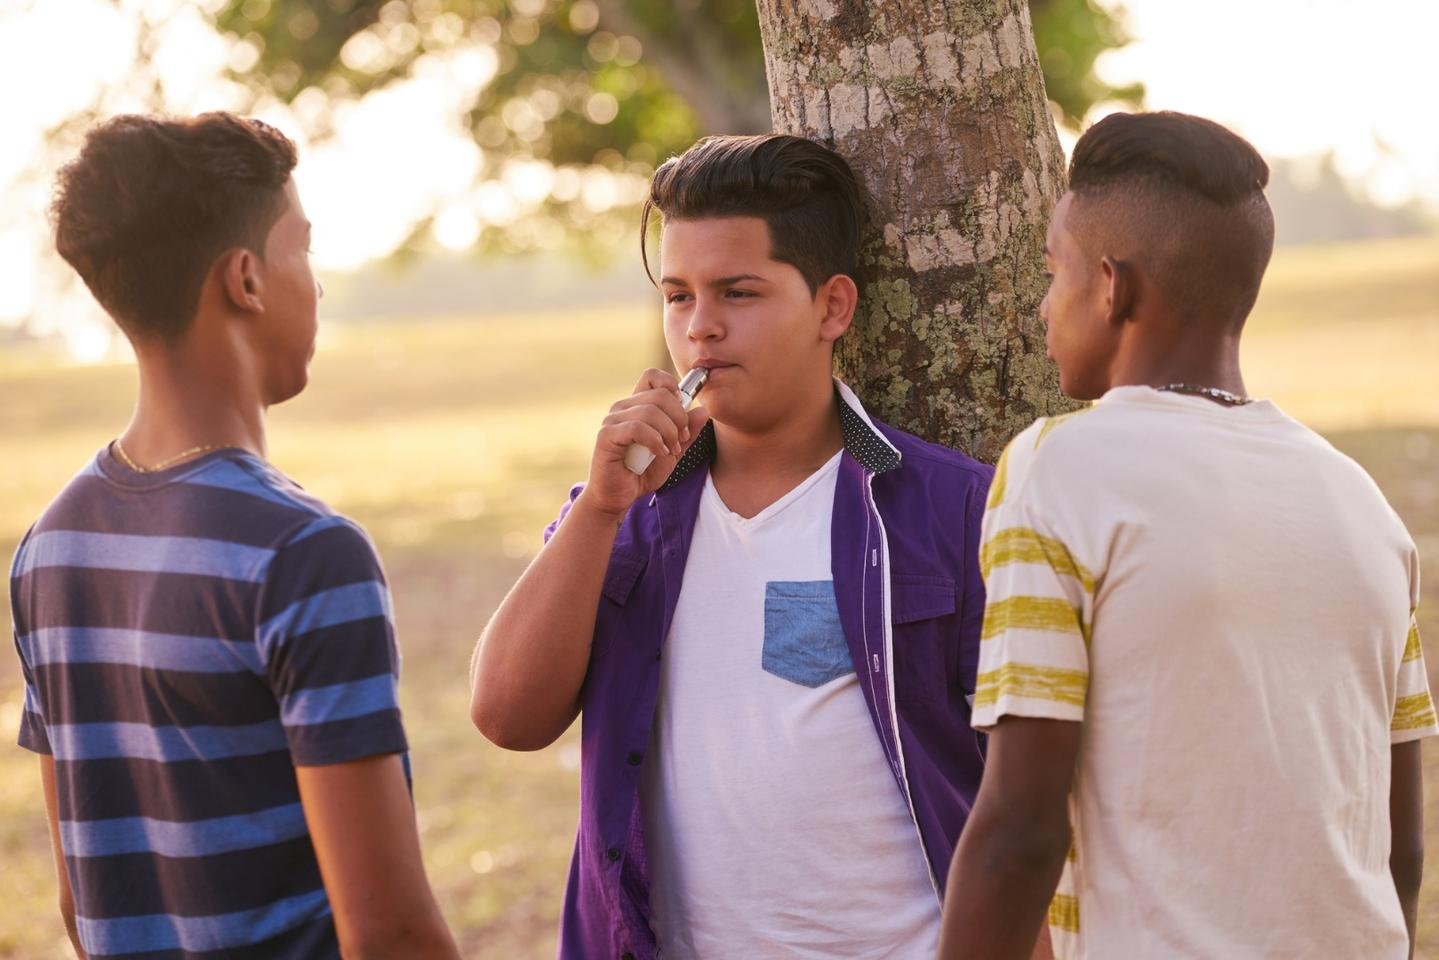 Hospitalizations of teenagers displaying severe lung diseasea has sparked anew wave of health concerns around e-cigarette use